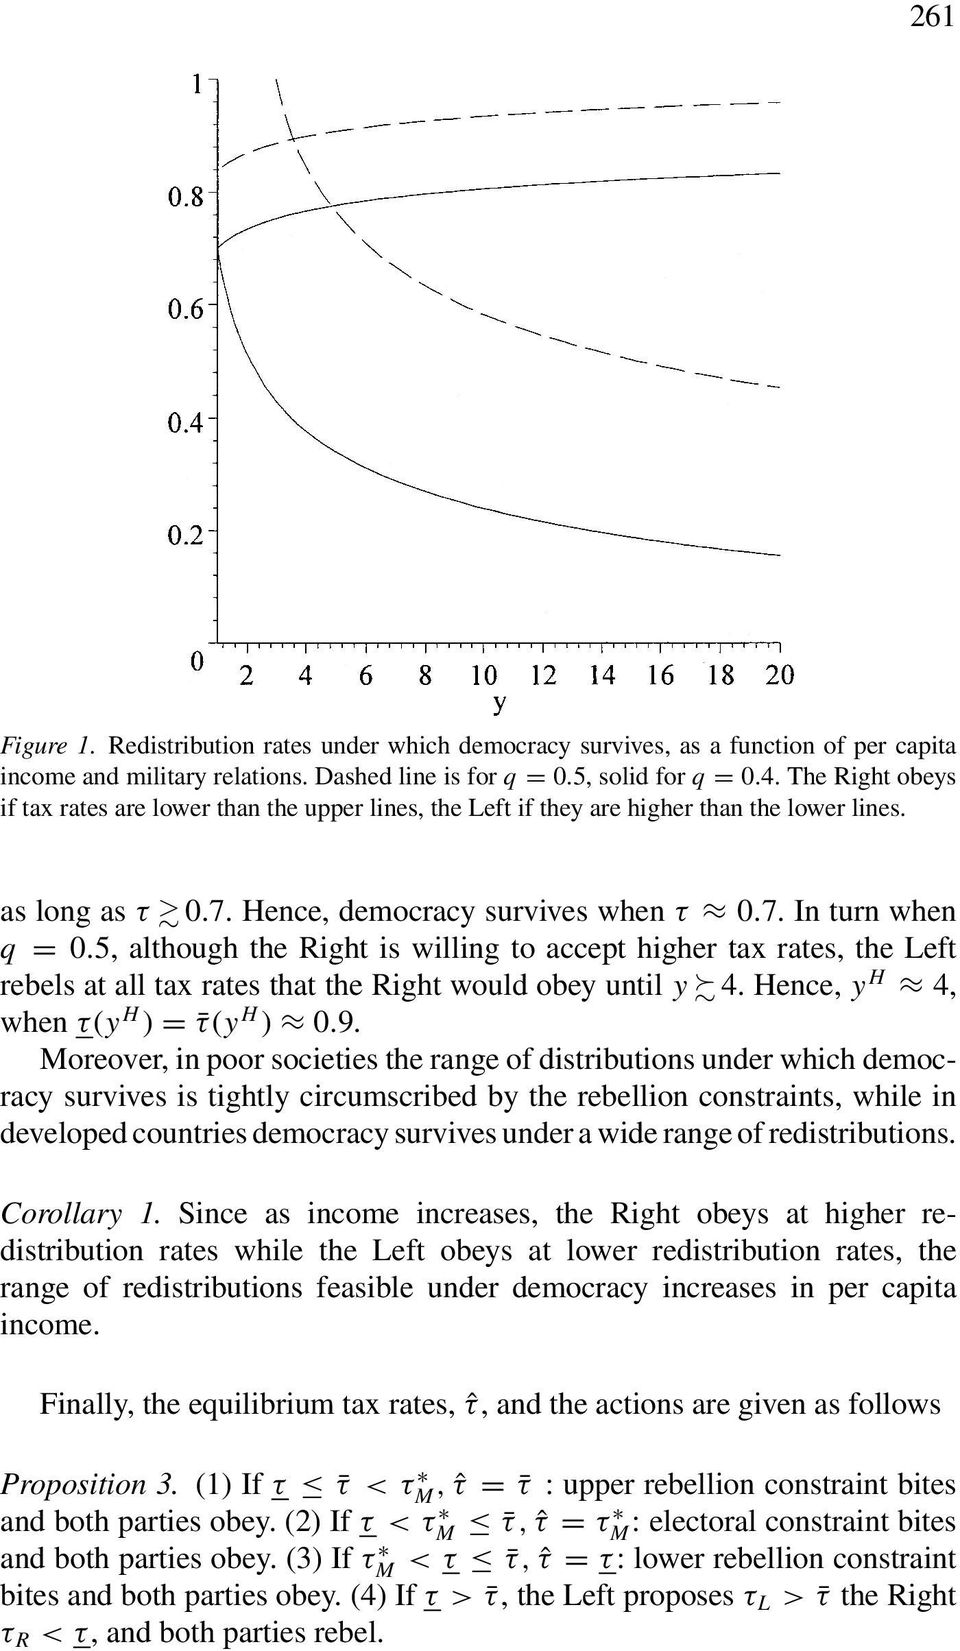 5, although the Right is willing to accept higher tax rates, the Left rebels at all tax rates that the Right would obey until y 4. Hence, y H 4, when τ(y H ) = τ(y H ) 0.9.